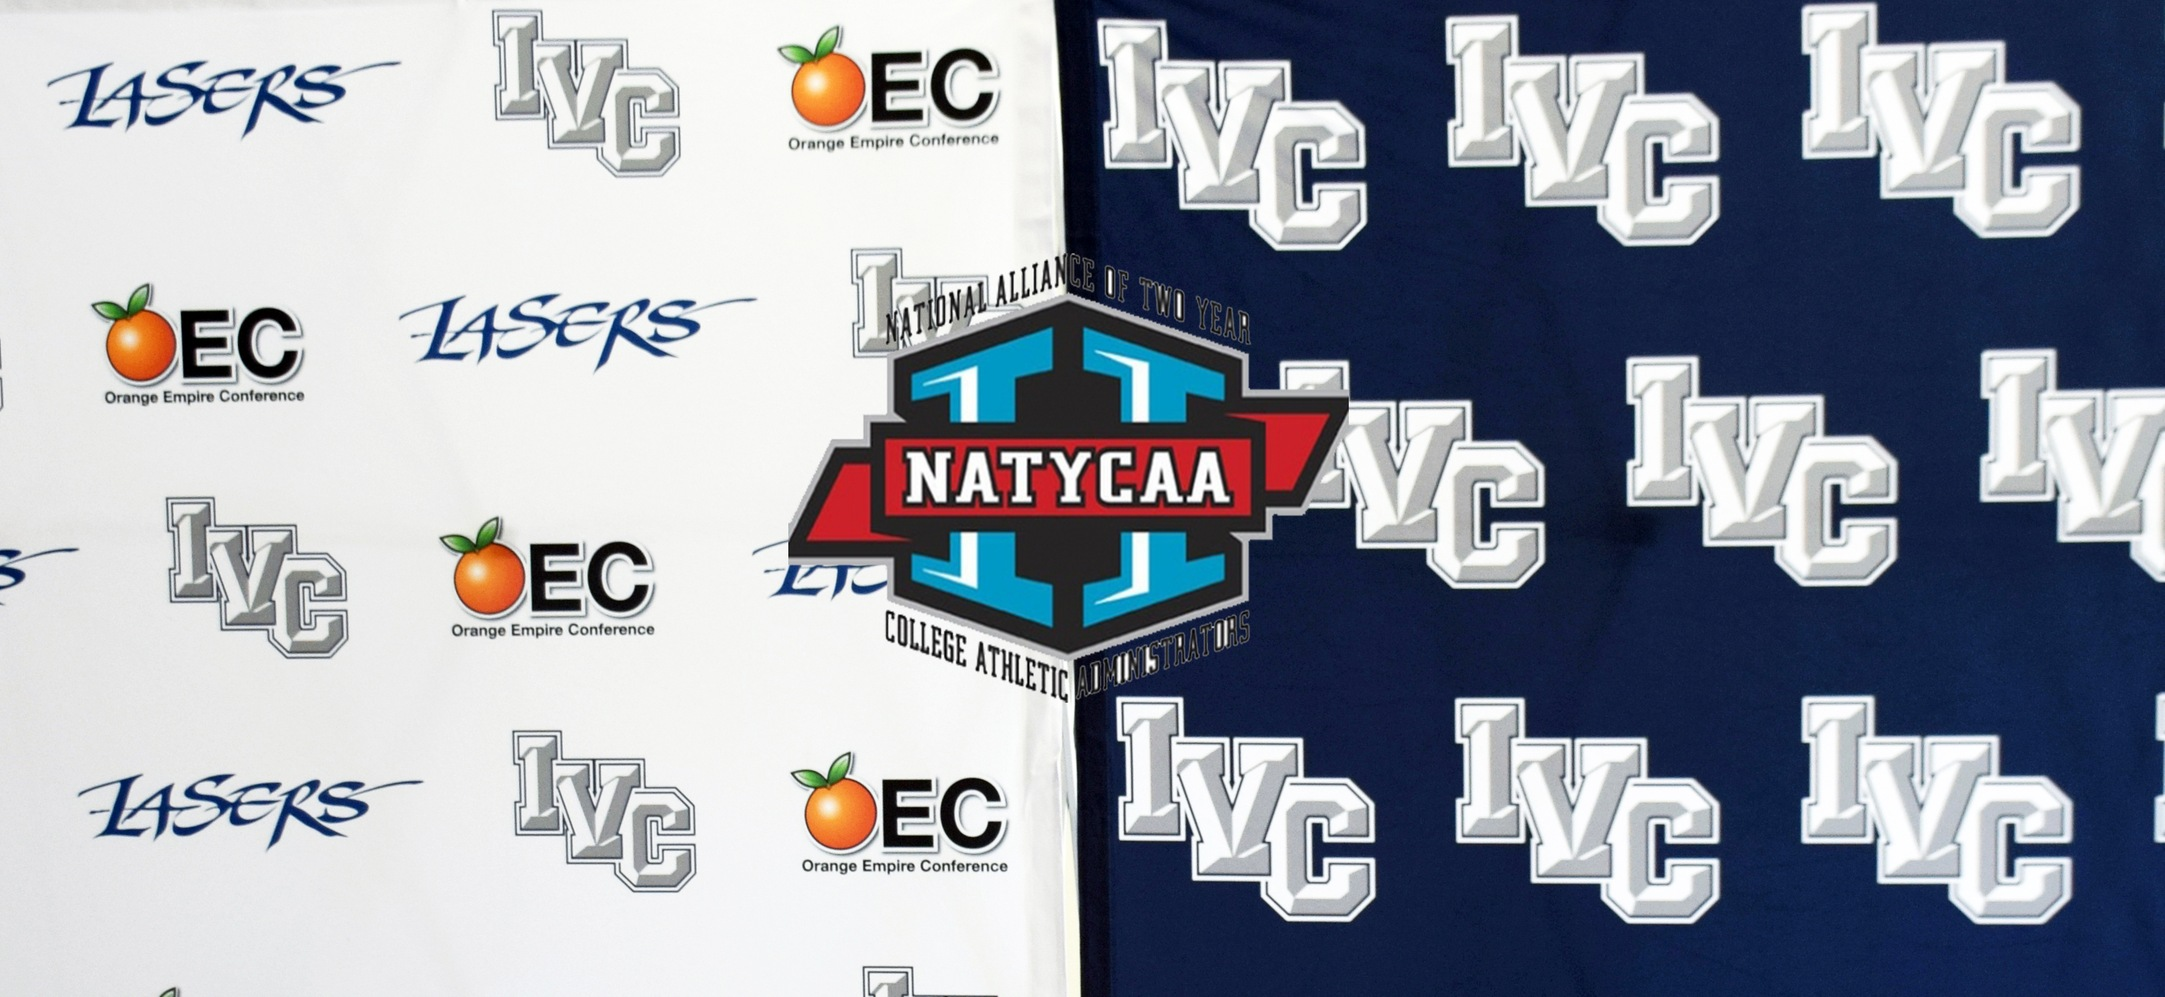 Irvine Valley finishes a strong 12th in NATYCAA Standings